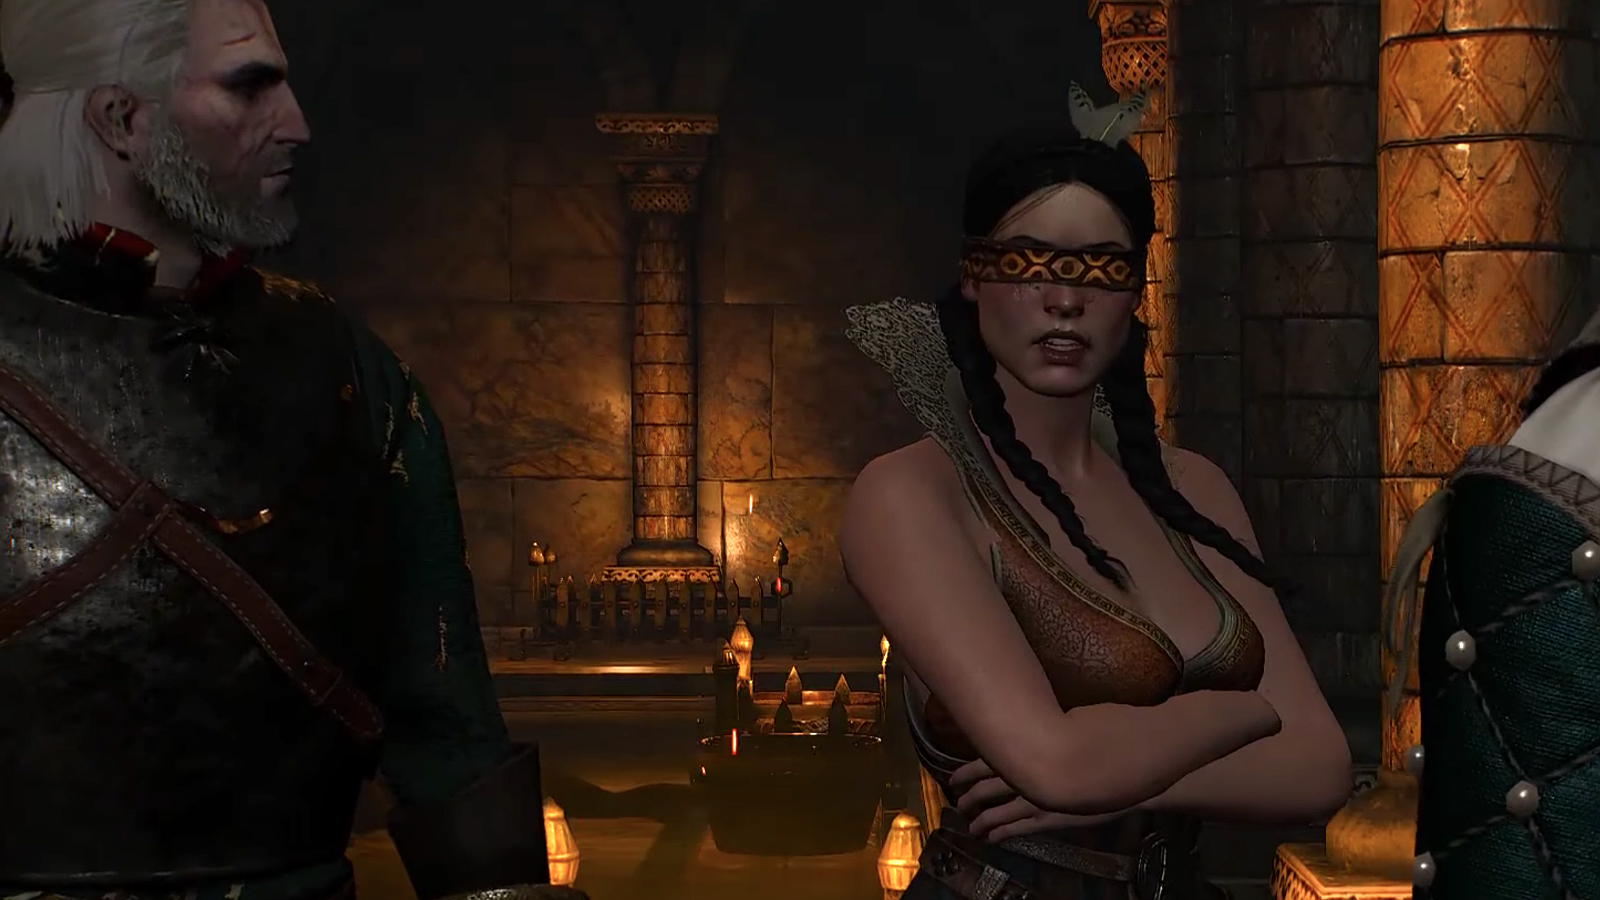 Philippa Eilhart in The Witcher 3 with Geralt